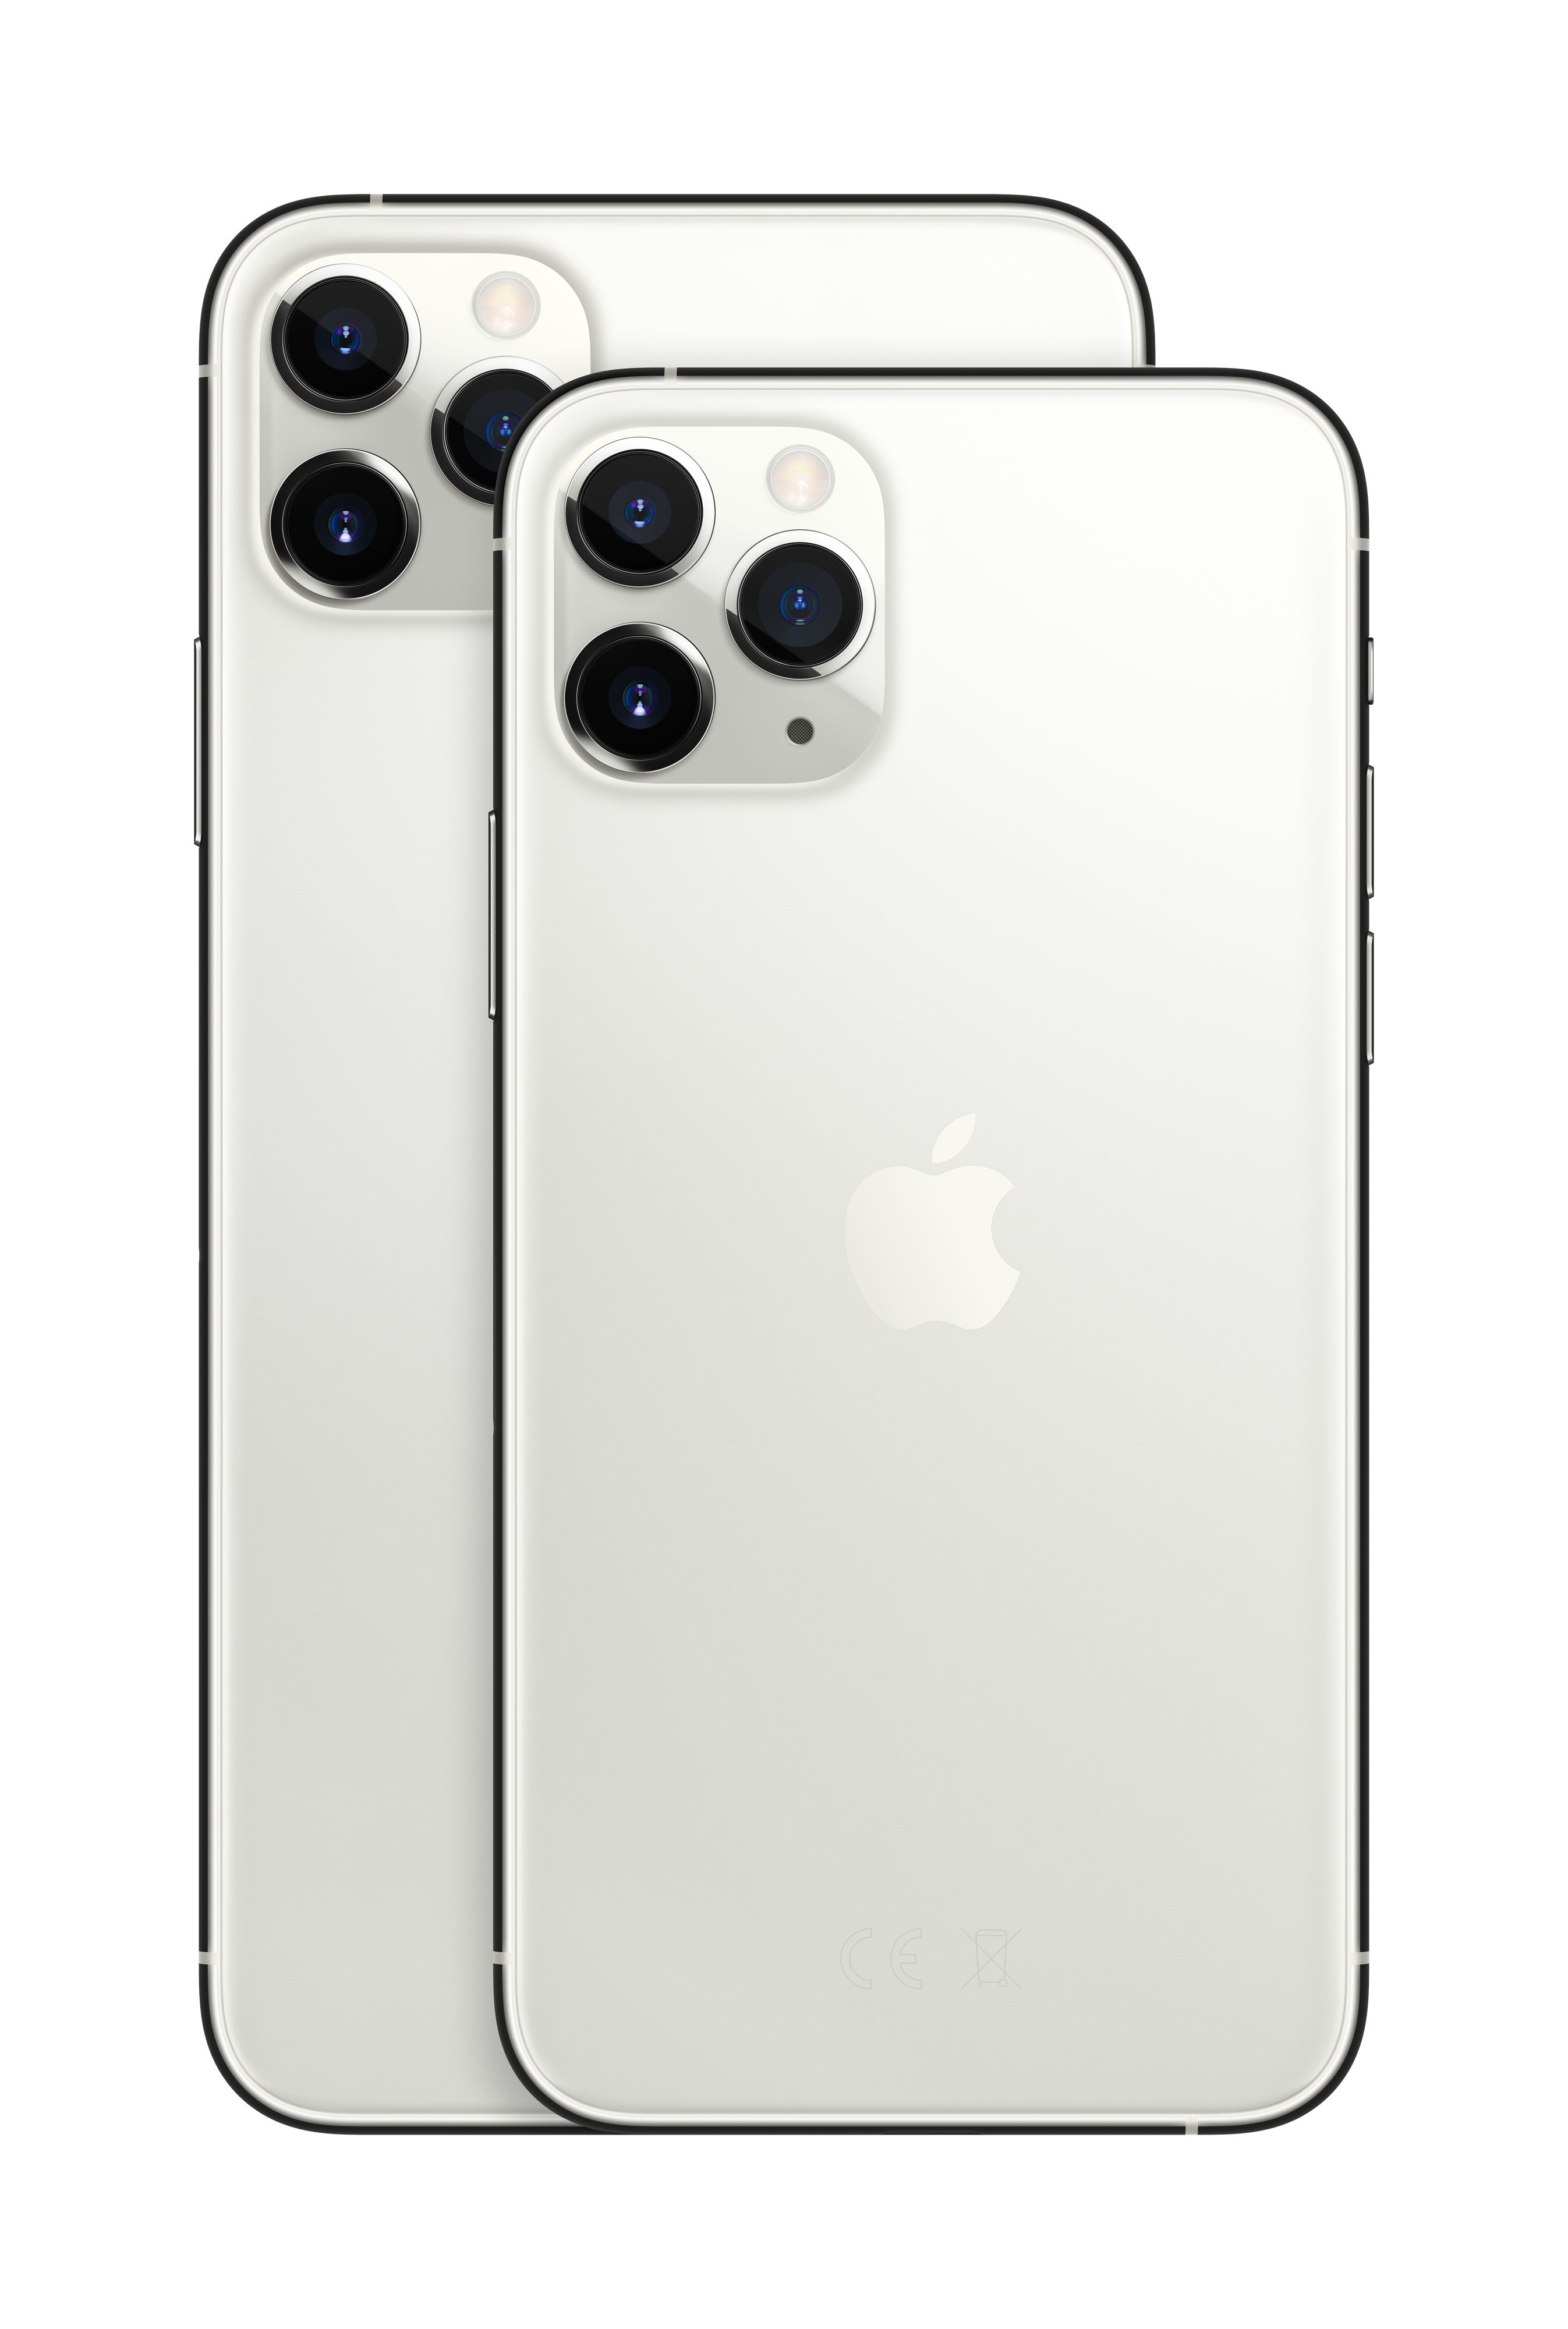 apple iphone 11 pro max 512gb silber iphone 11 pro. Black Bedroom Furniture Sets. Home Design Ideas